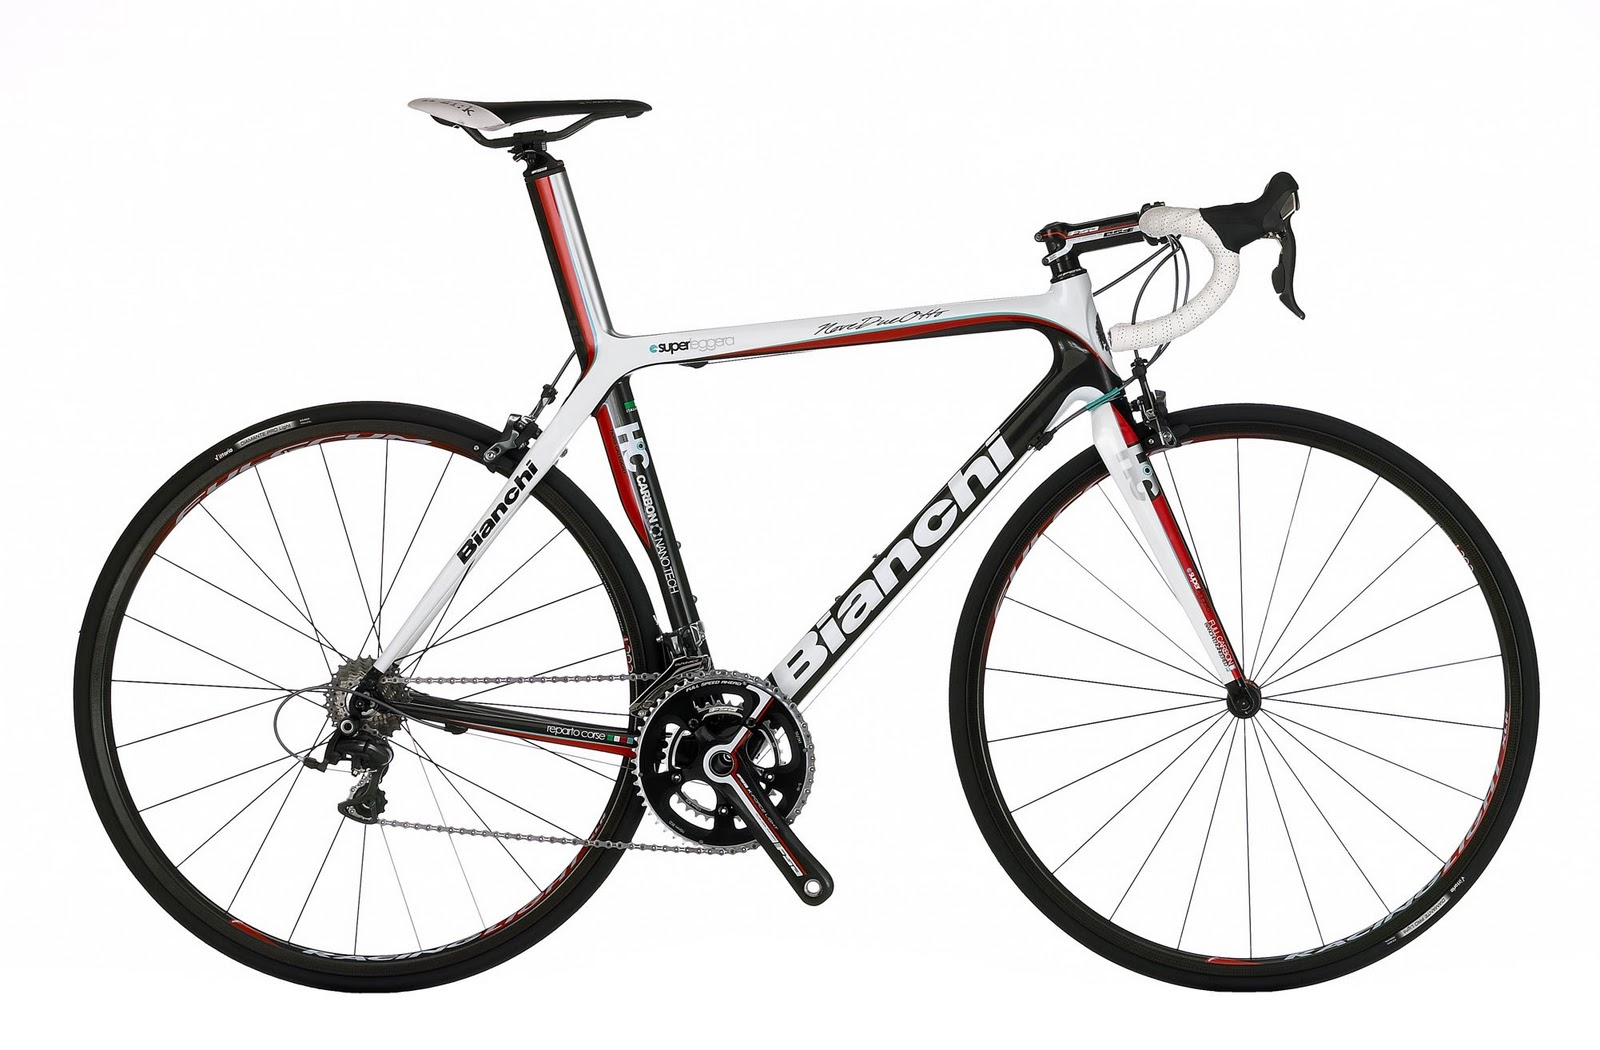 Ride My Bicycle Bianchi 928 Sl Dura Ace